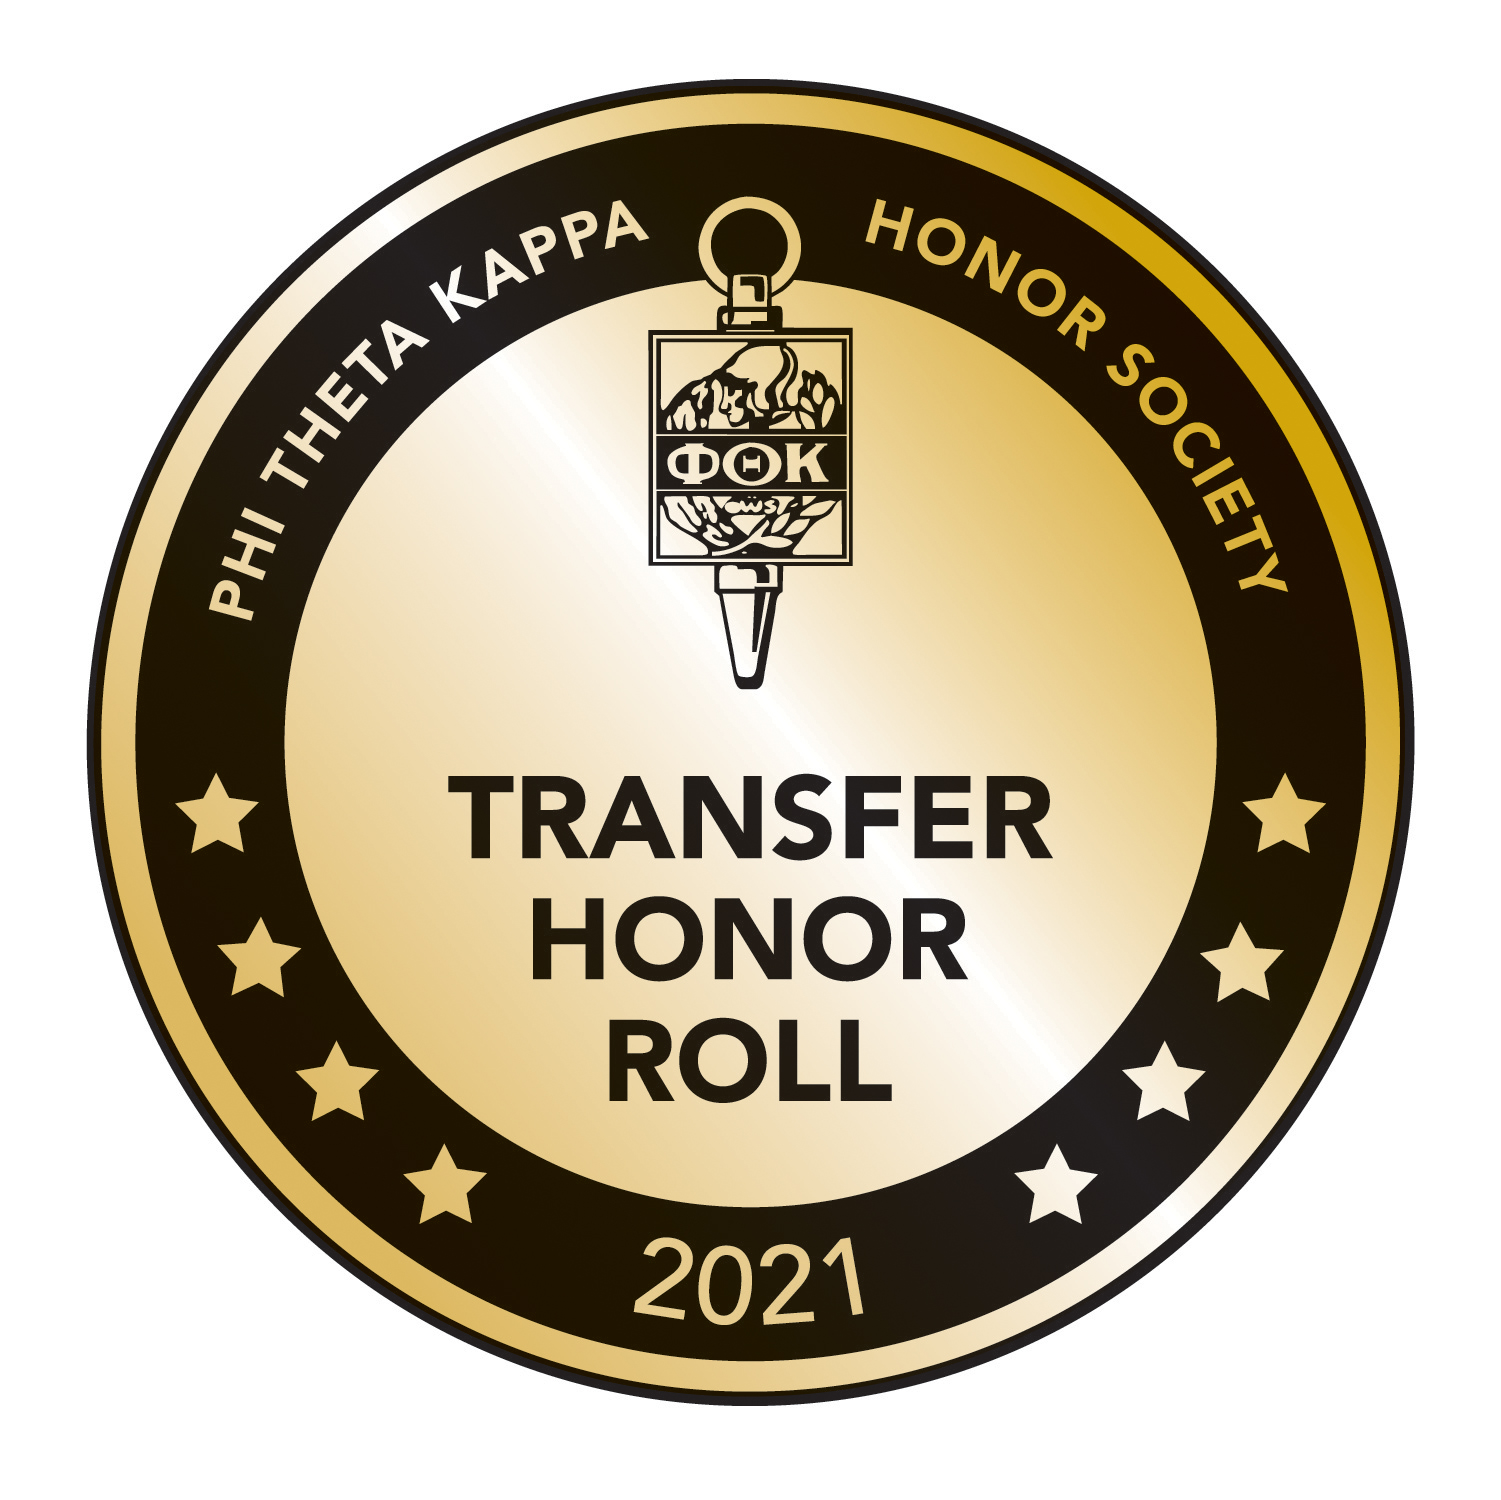 2021 PTK Transfer Honor Roll